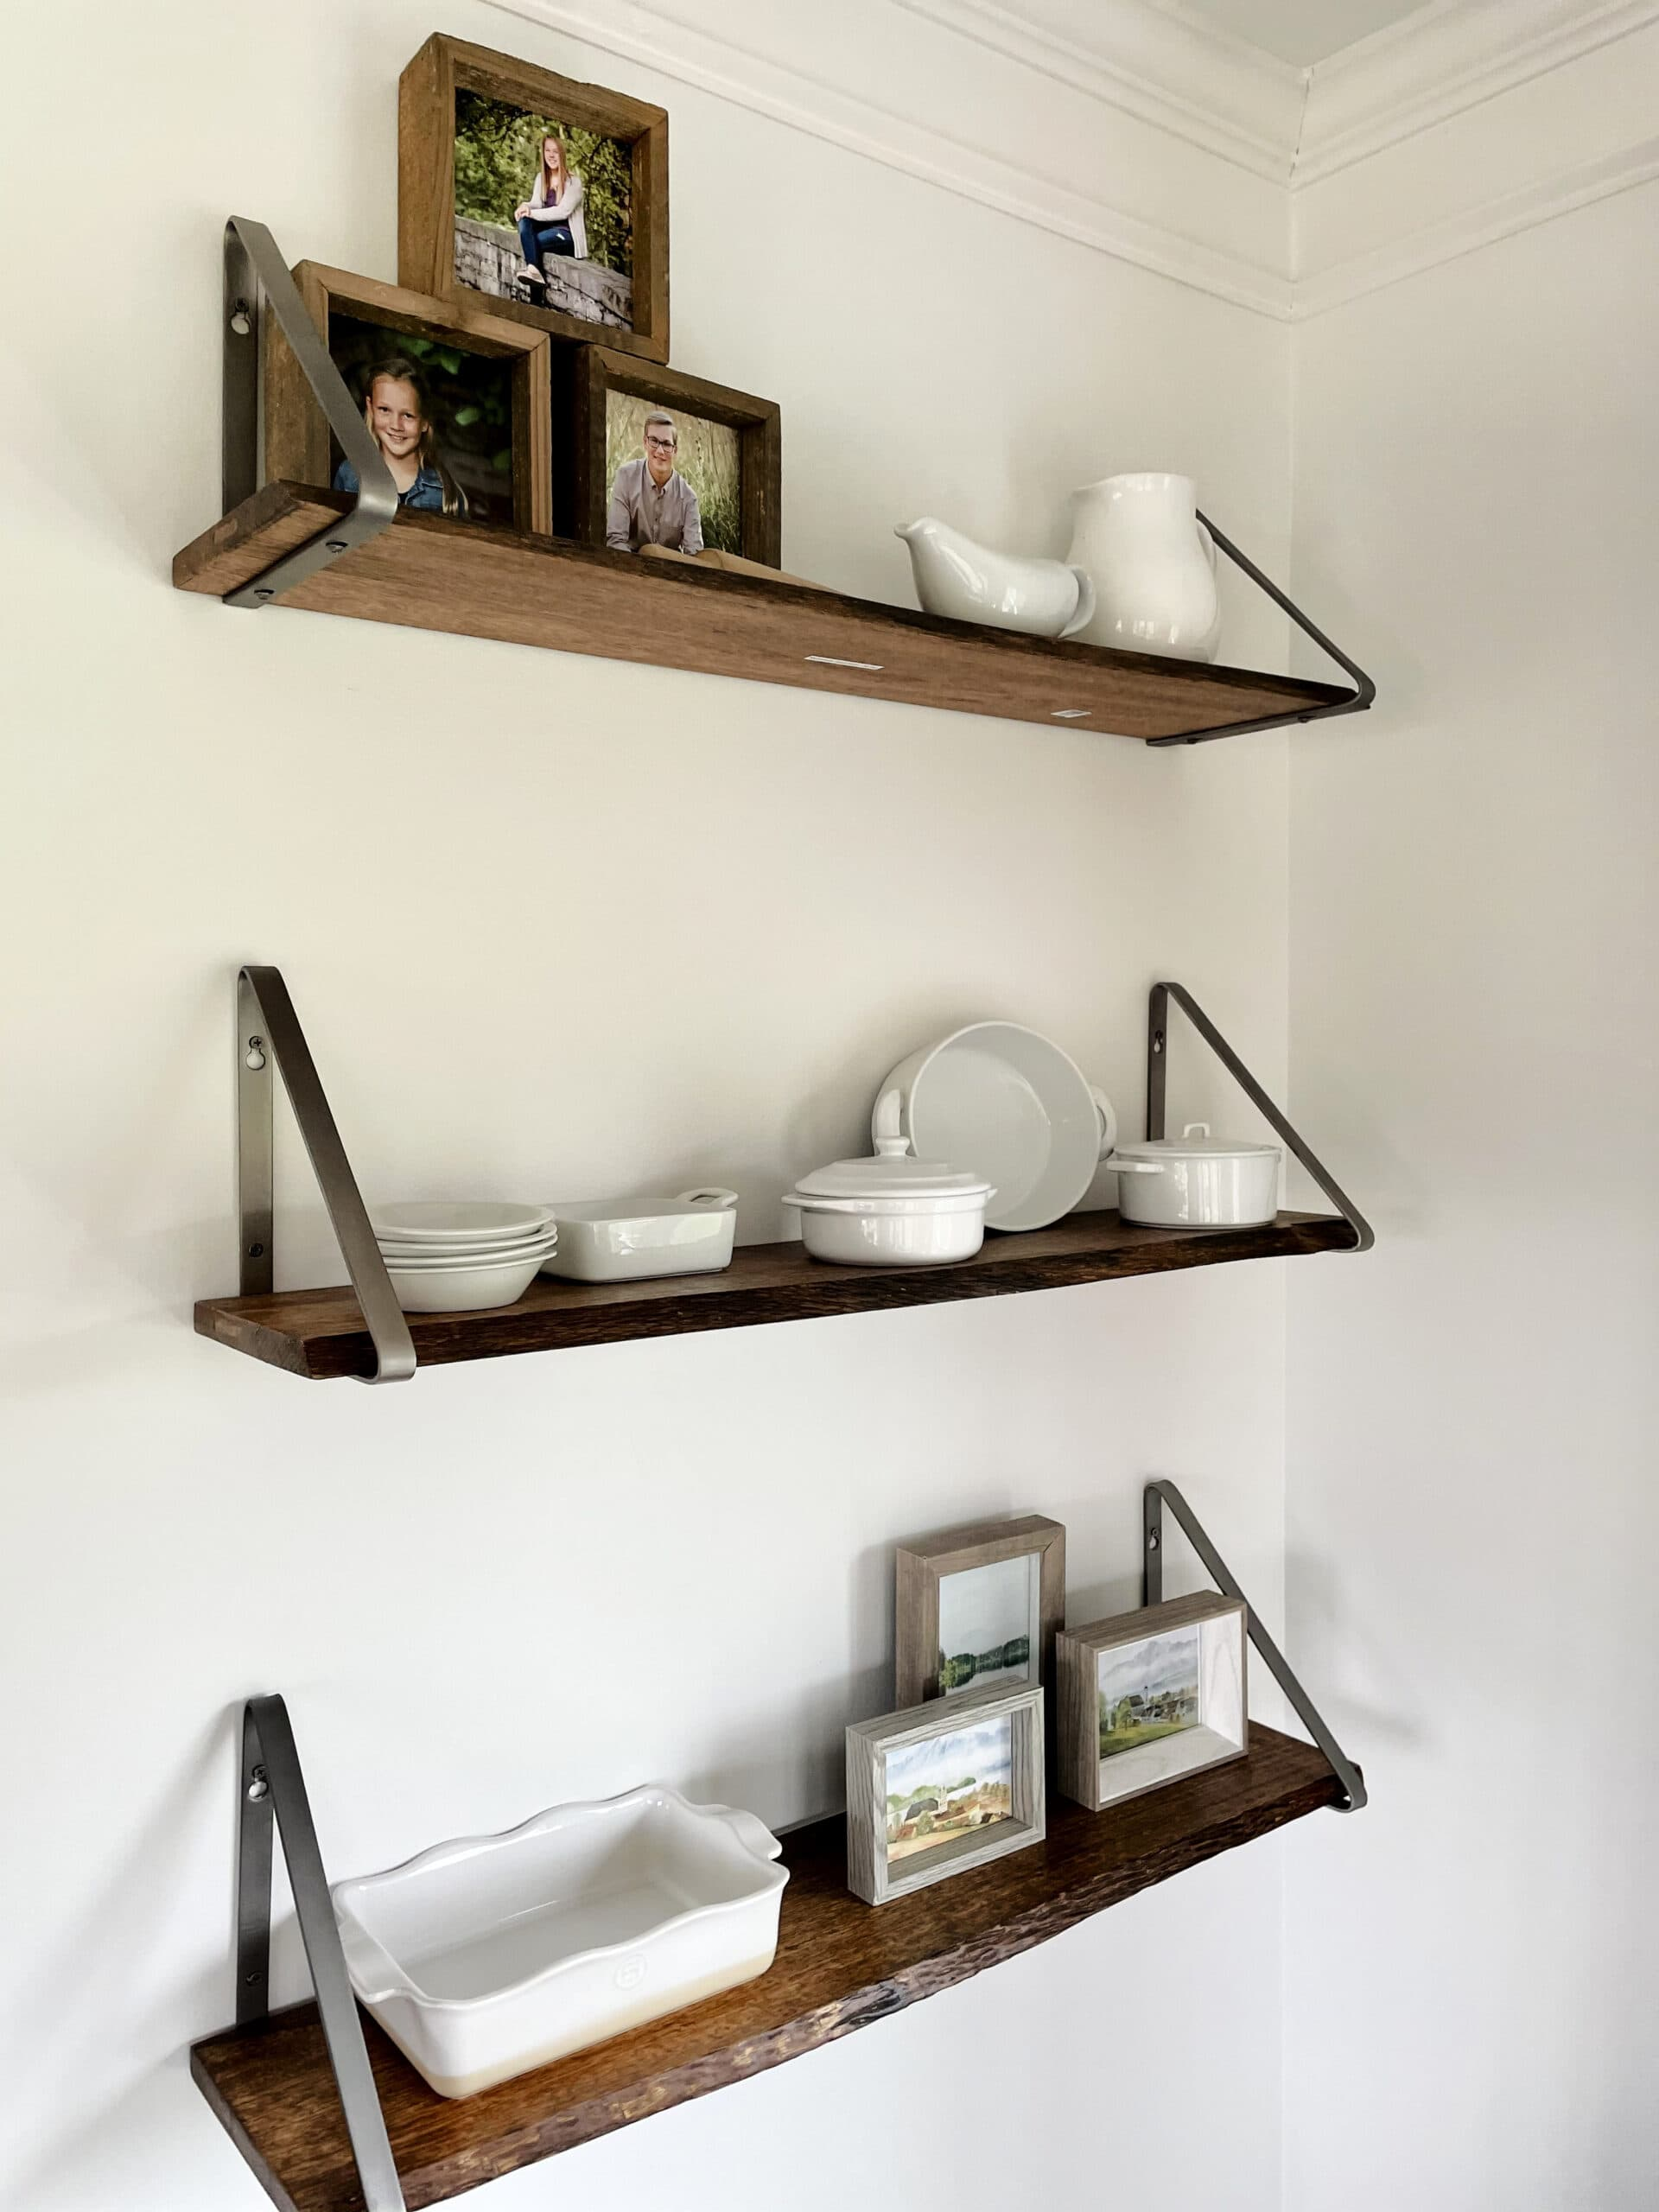 Laurie's shelves